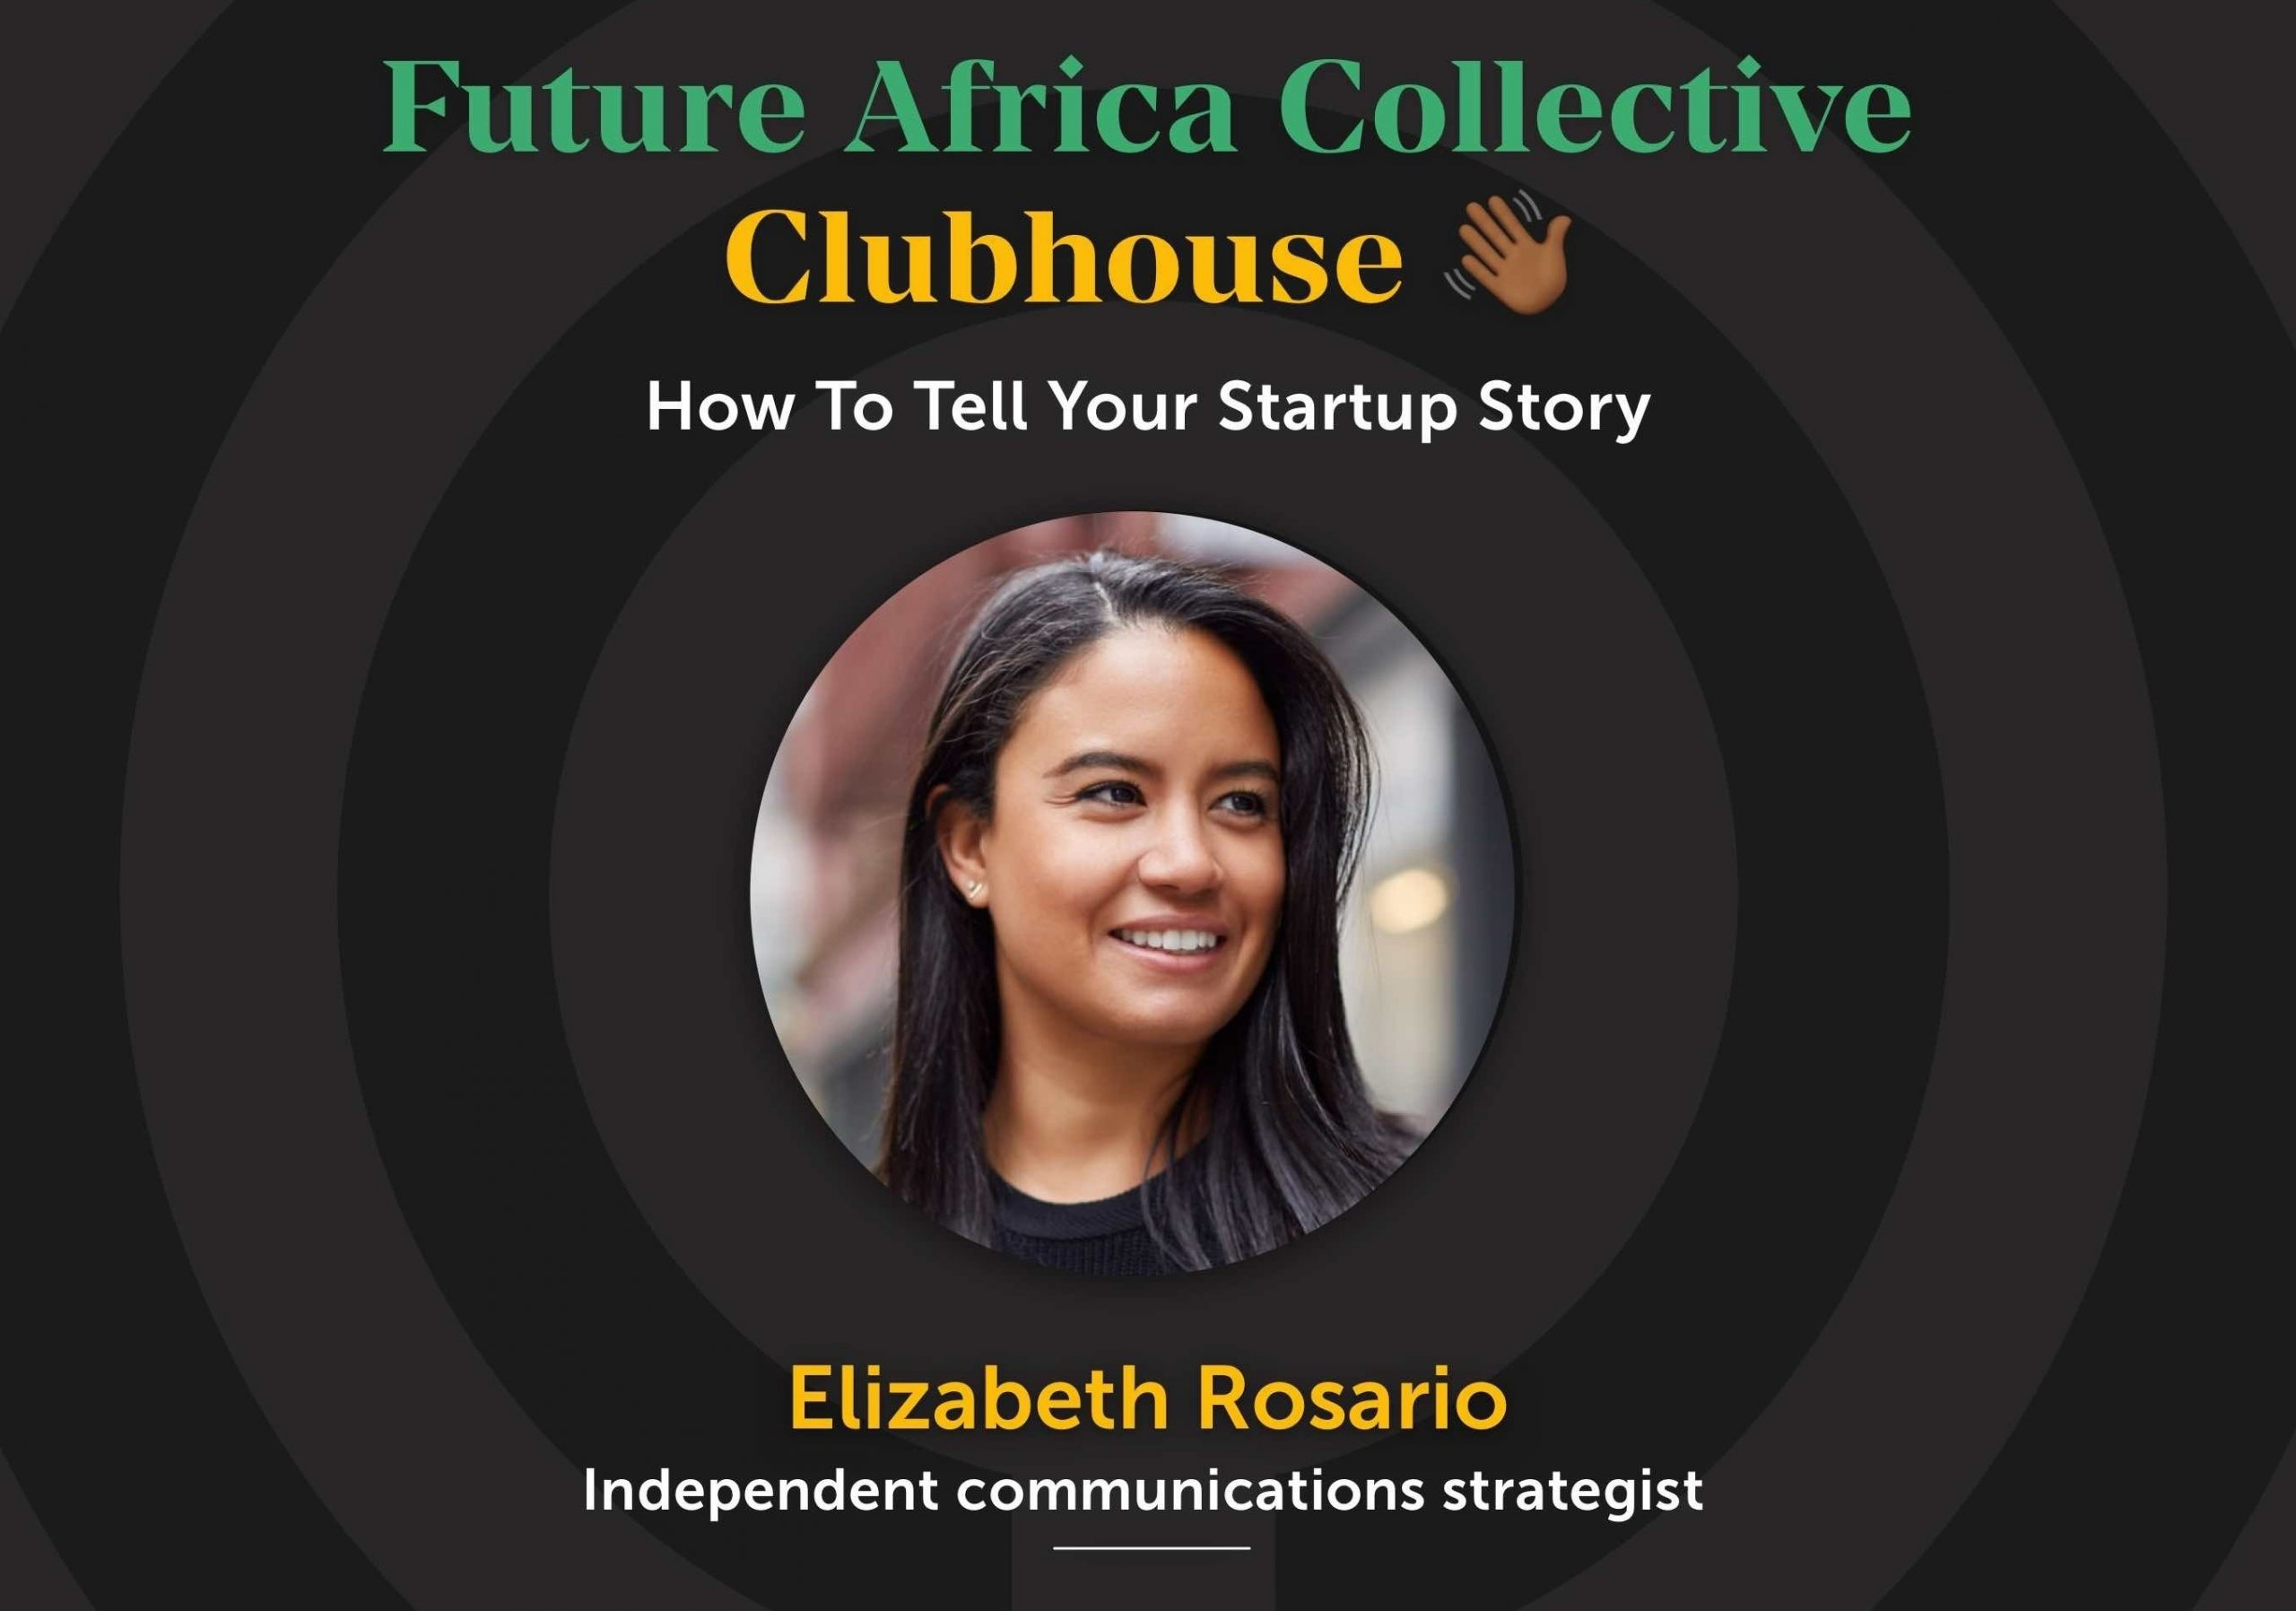 Elisabeth Rosario (how to tell your startup story better)